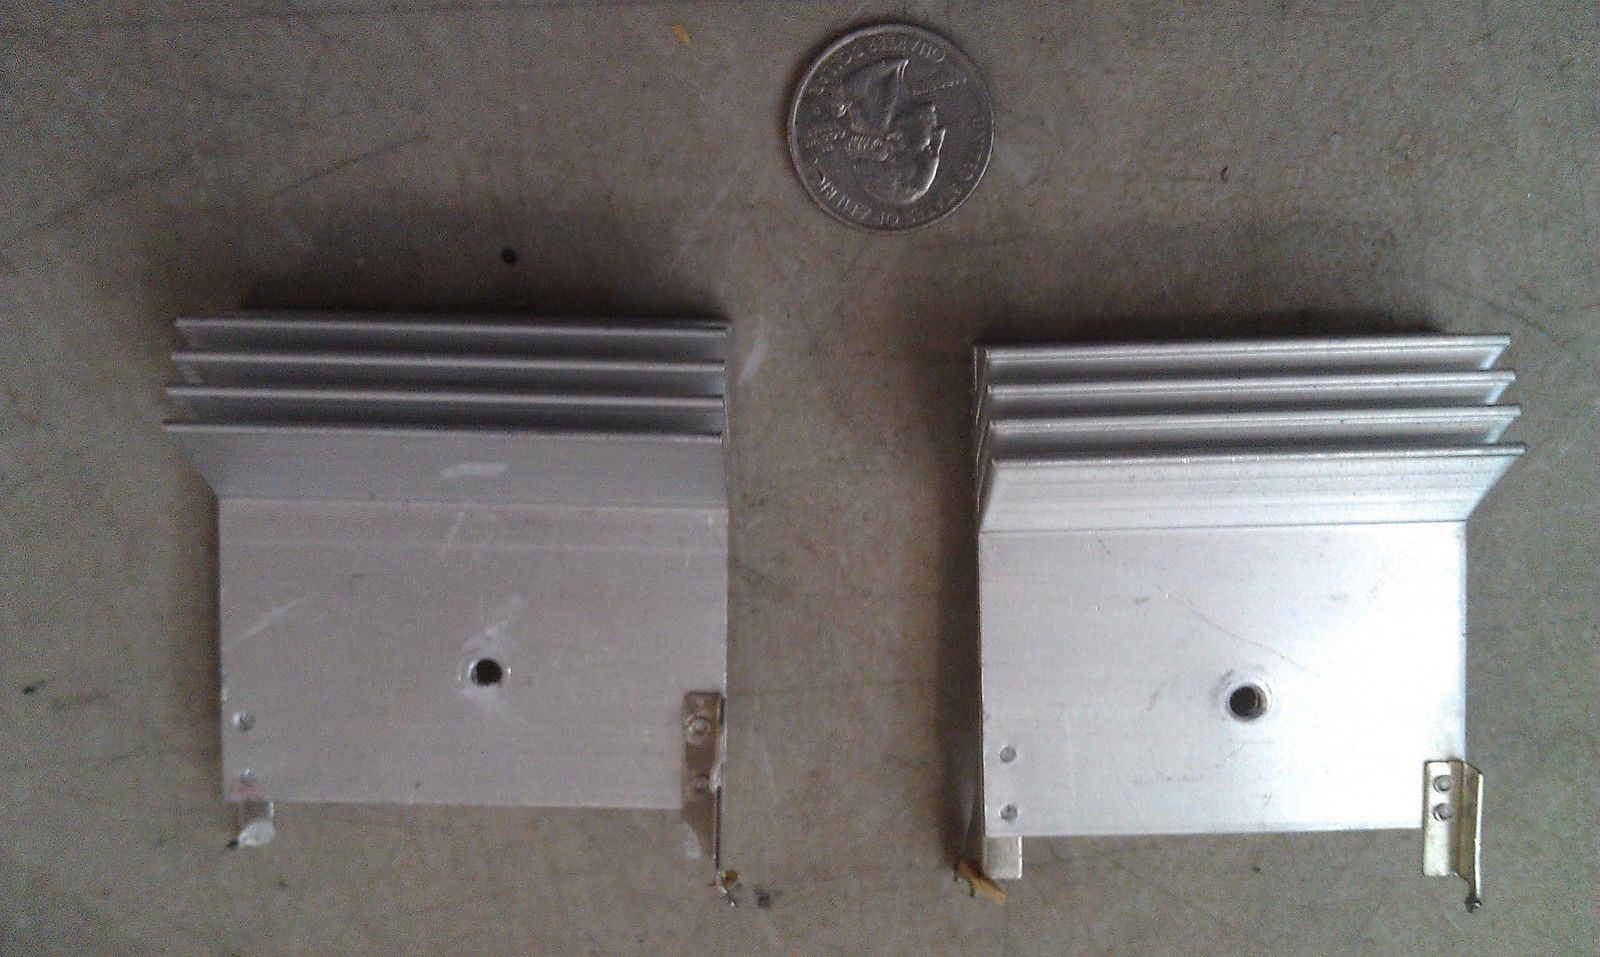 Primary image for 8Z38 PAIR OF ALUMINUM HEAT SINKS, 60X60X22MM, 46G EACH, GOOD CONDITION